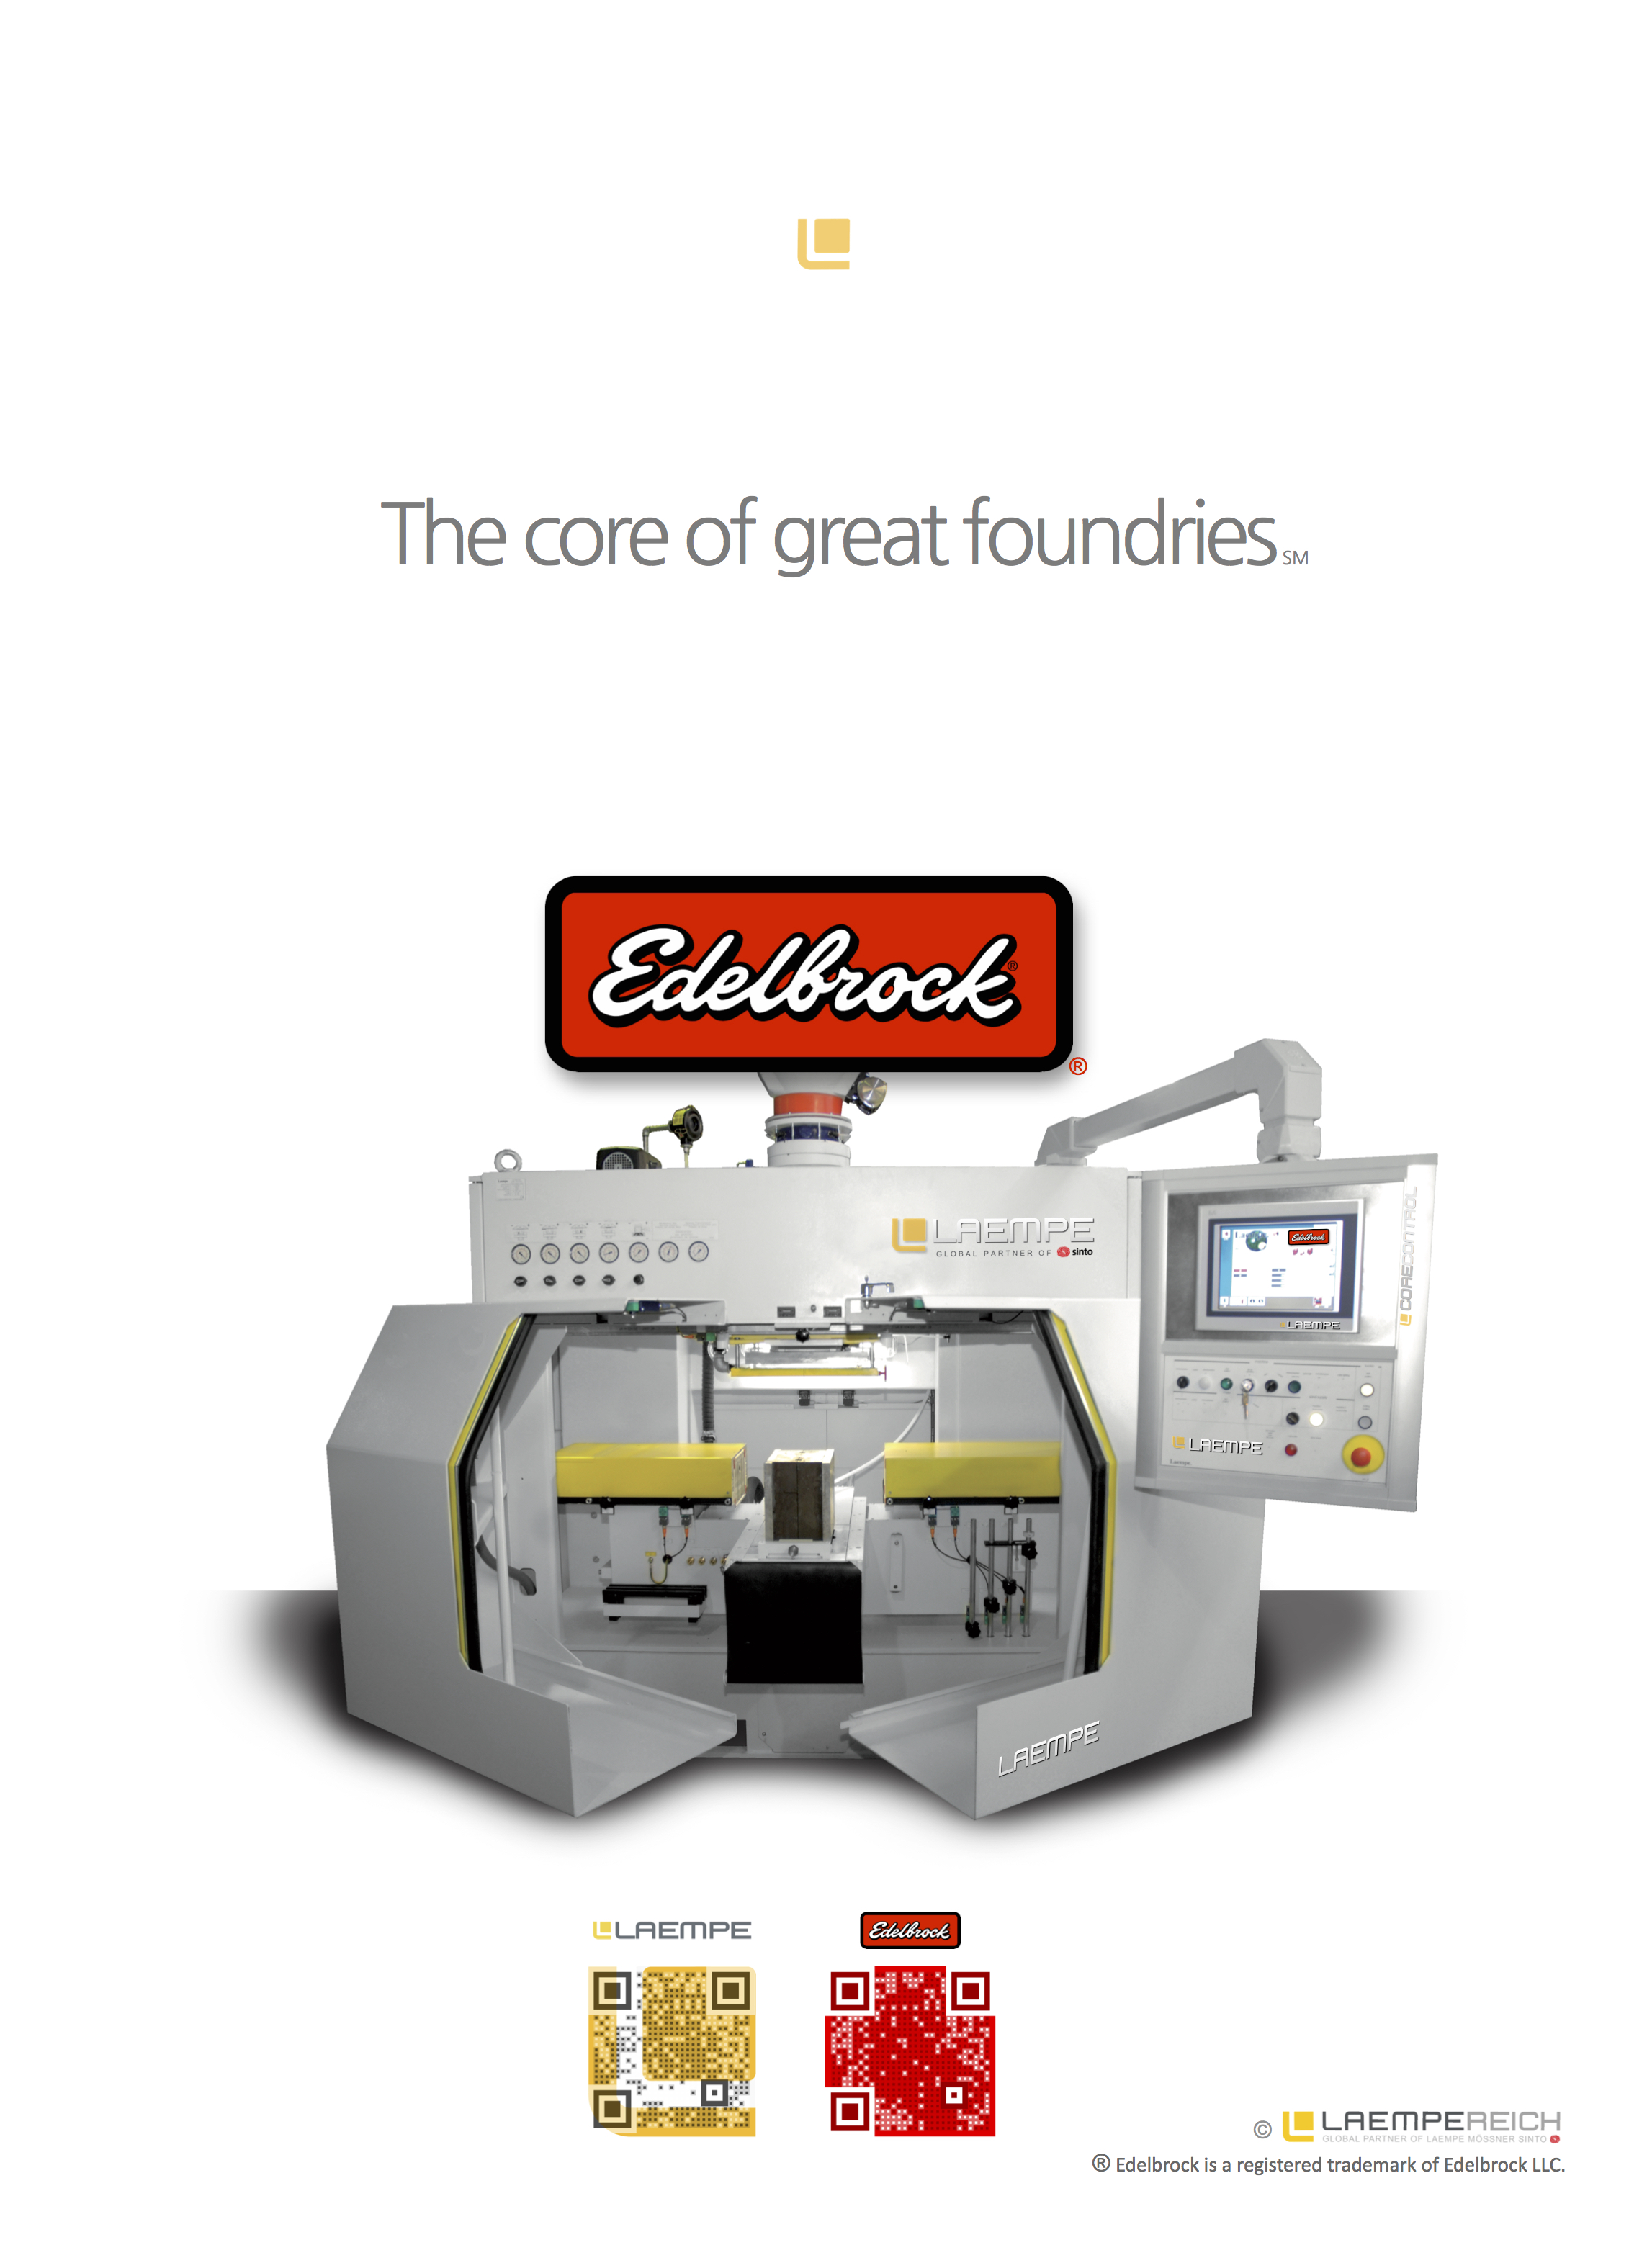 Edelbrock - At the Core of Great Foundries 2015 Red QR  26 October 15 - darker gray text - PCR.jpg